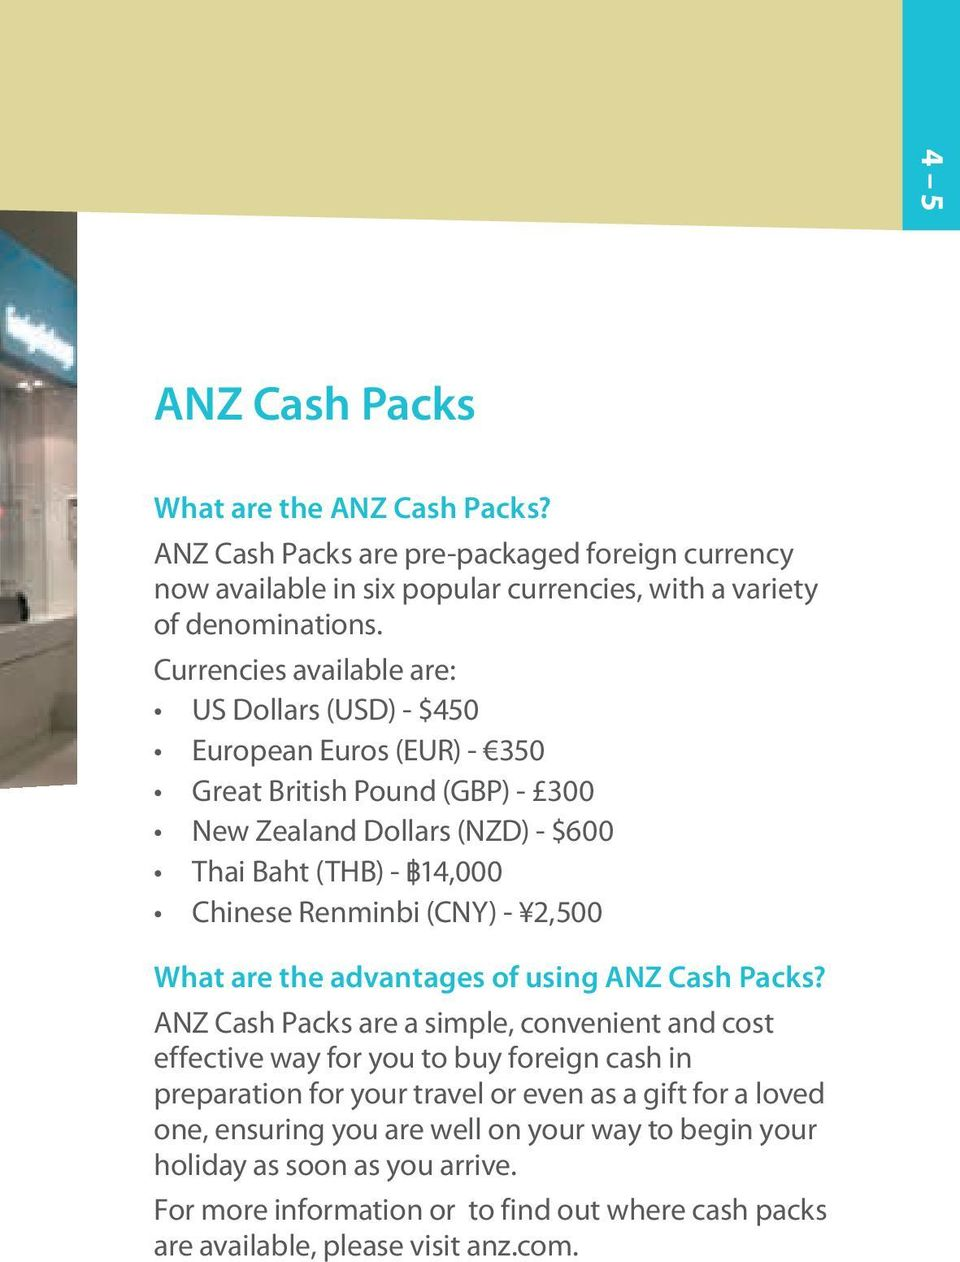 (CNY) - 2,500 What are the advantages of using ANZ Cash Packs?